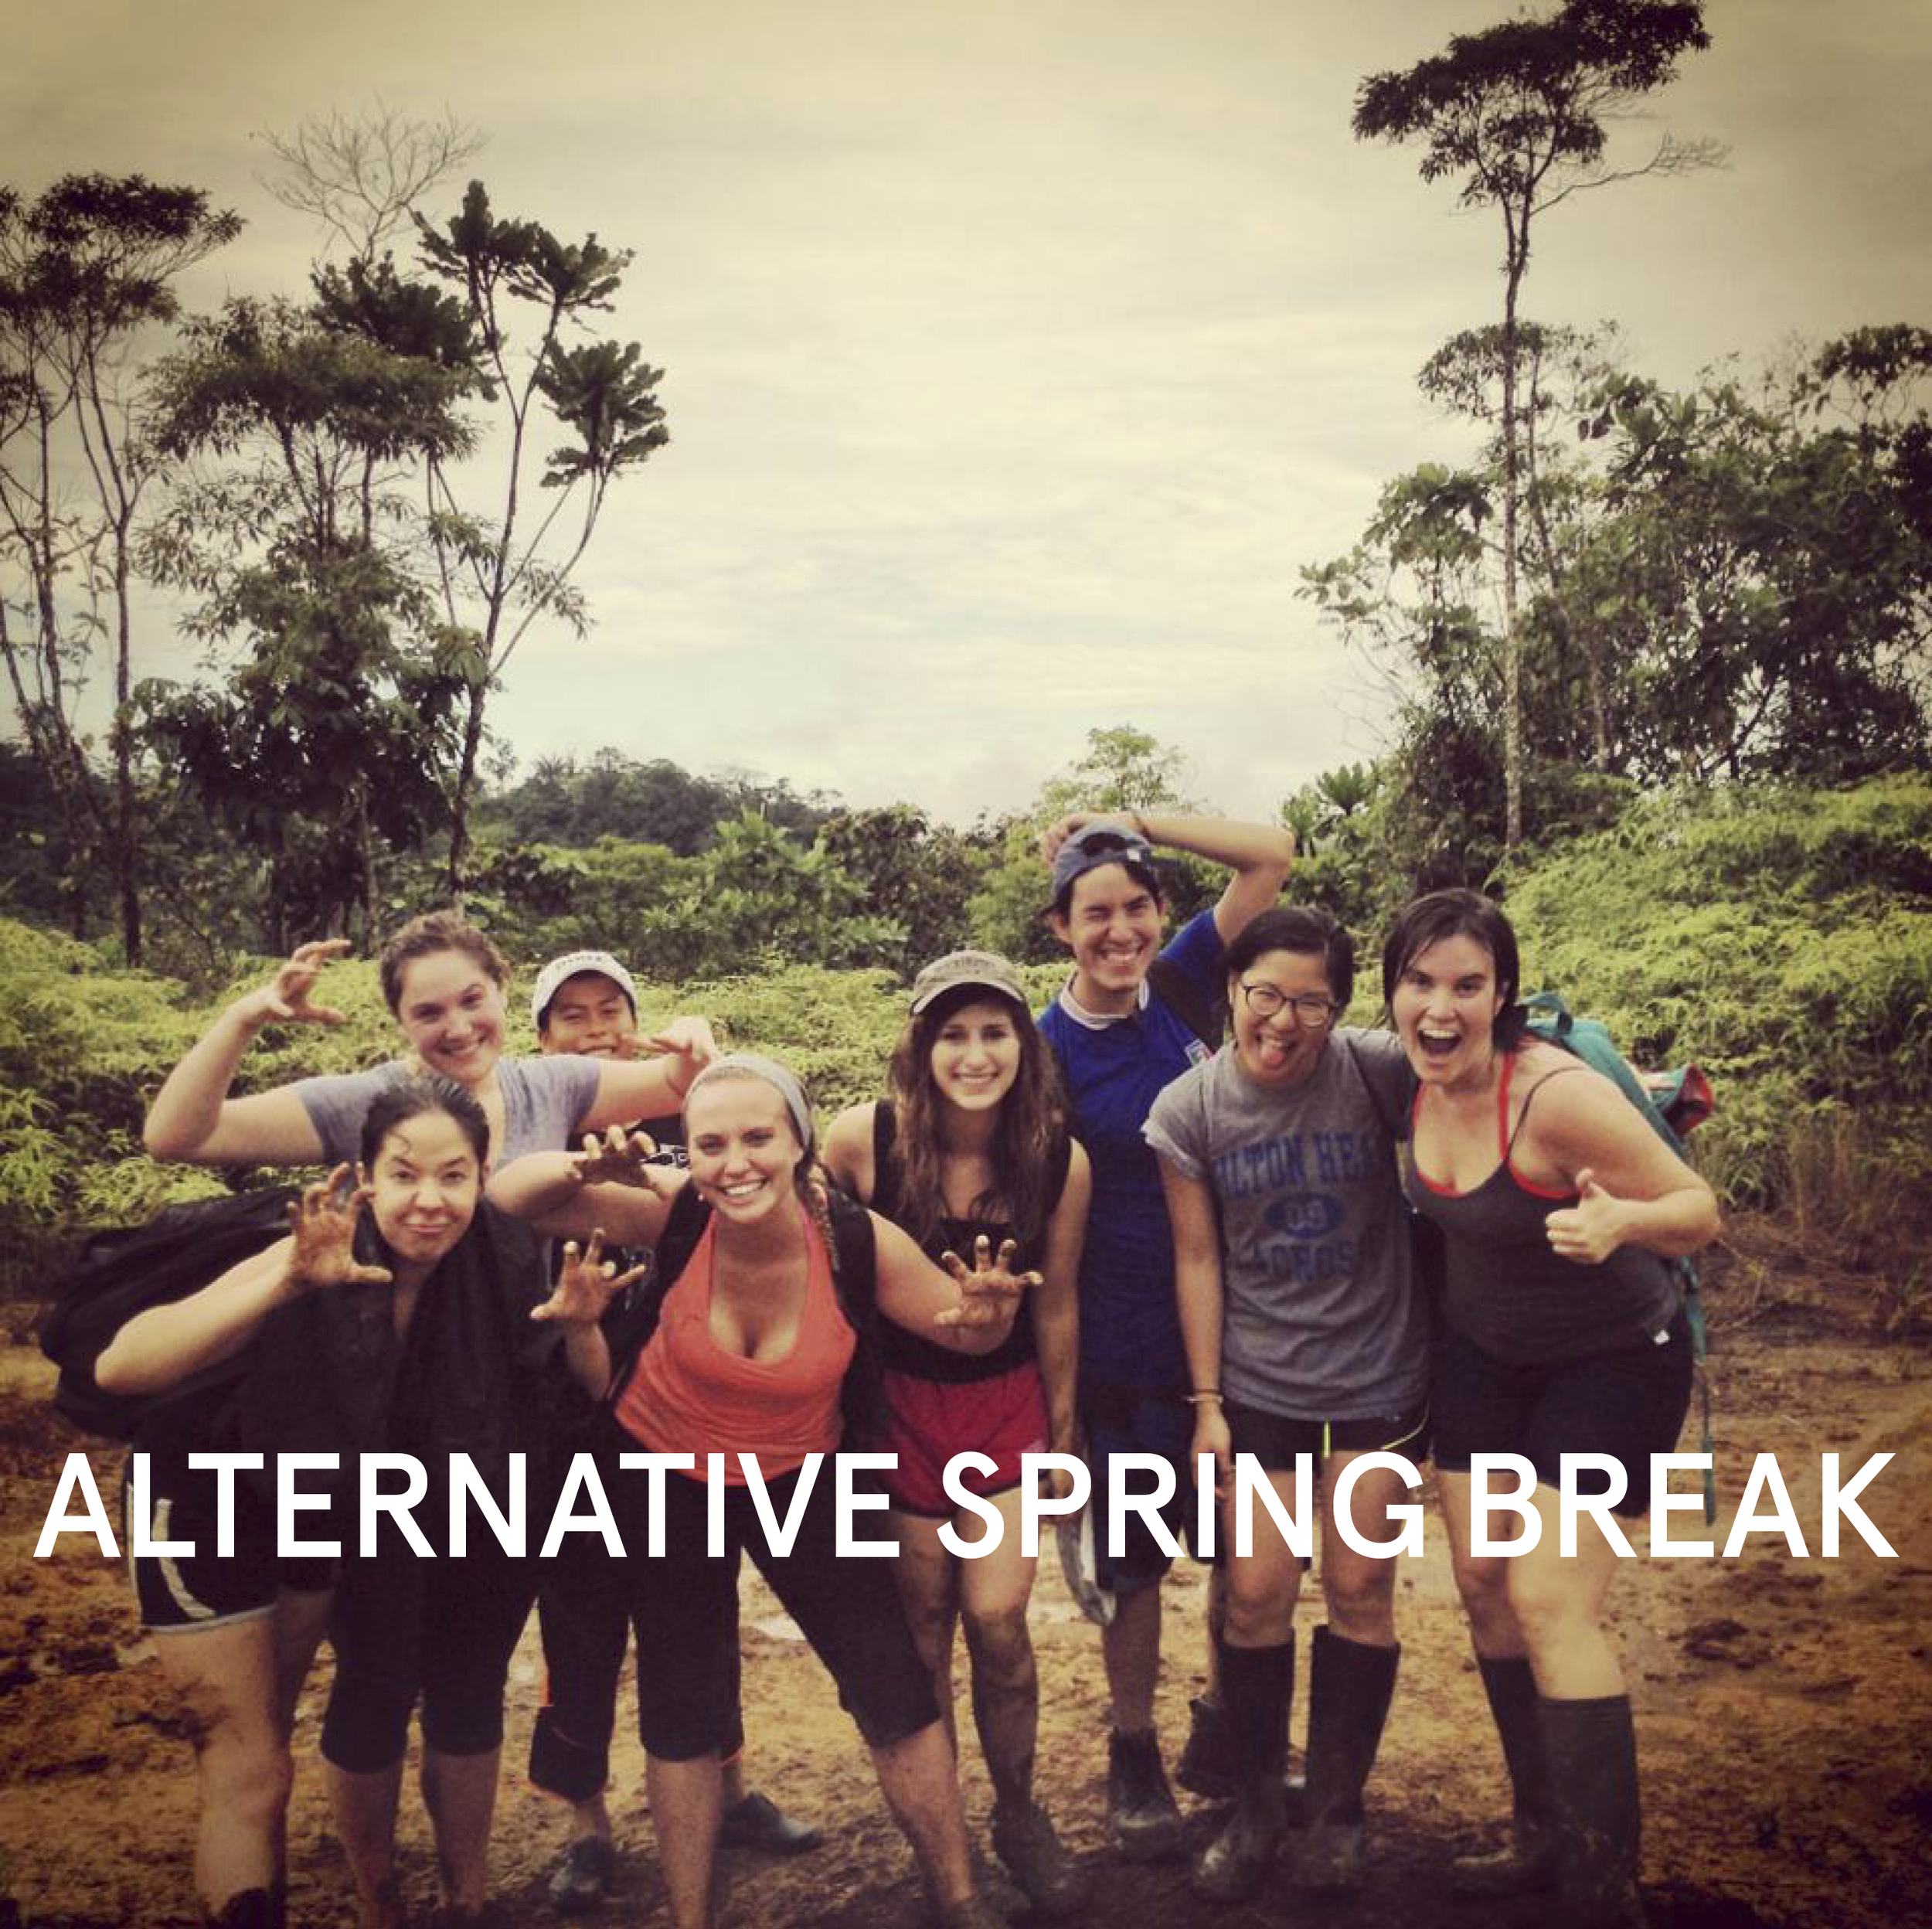 altspringbreak1revslide.jpg